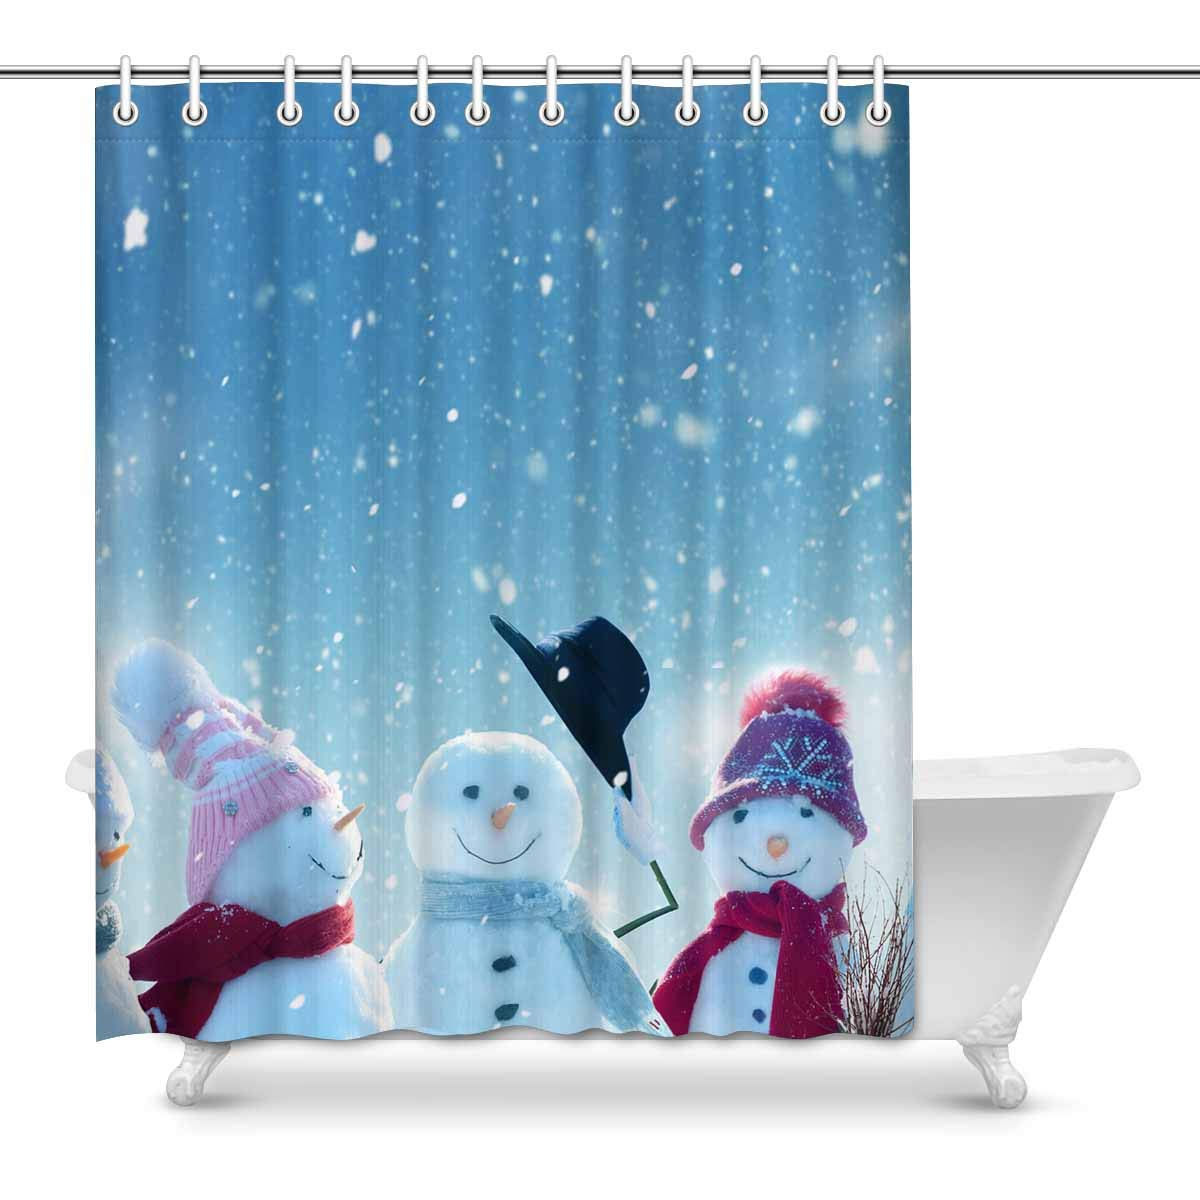 Shower Curtains Home Kitchen Unique Custom Merry Christmas